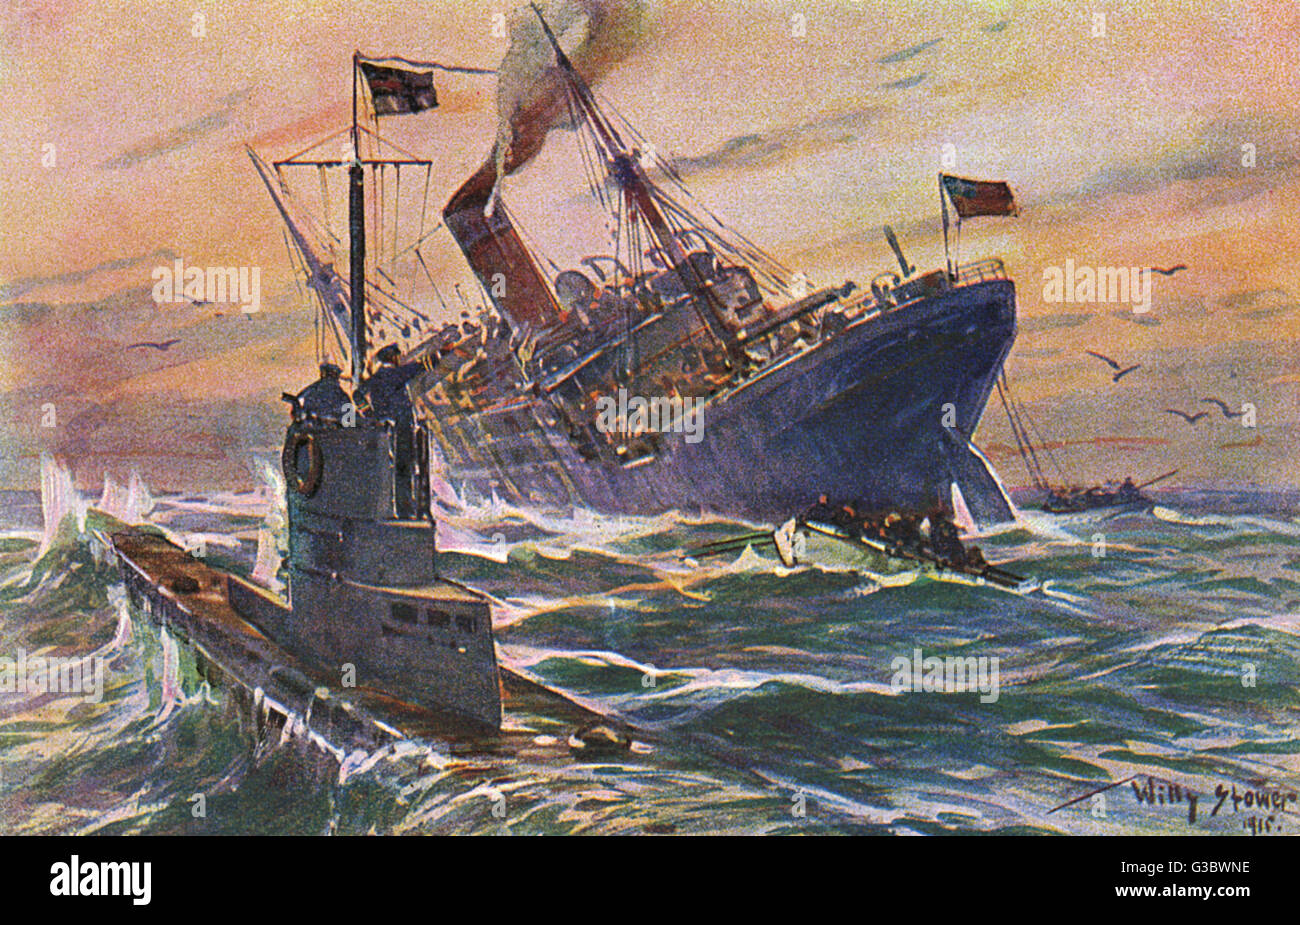 wwi german u-boat attack on an english commercial freighter  date: 1915 -